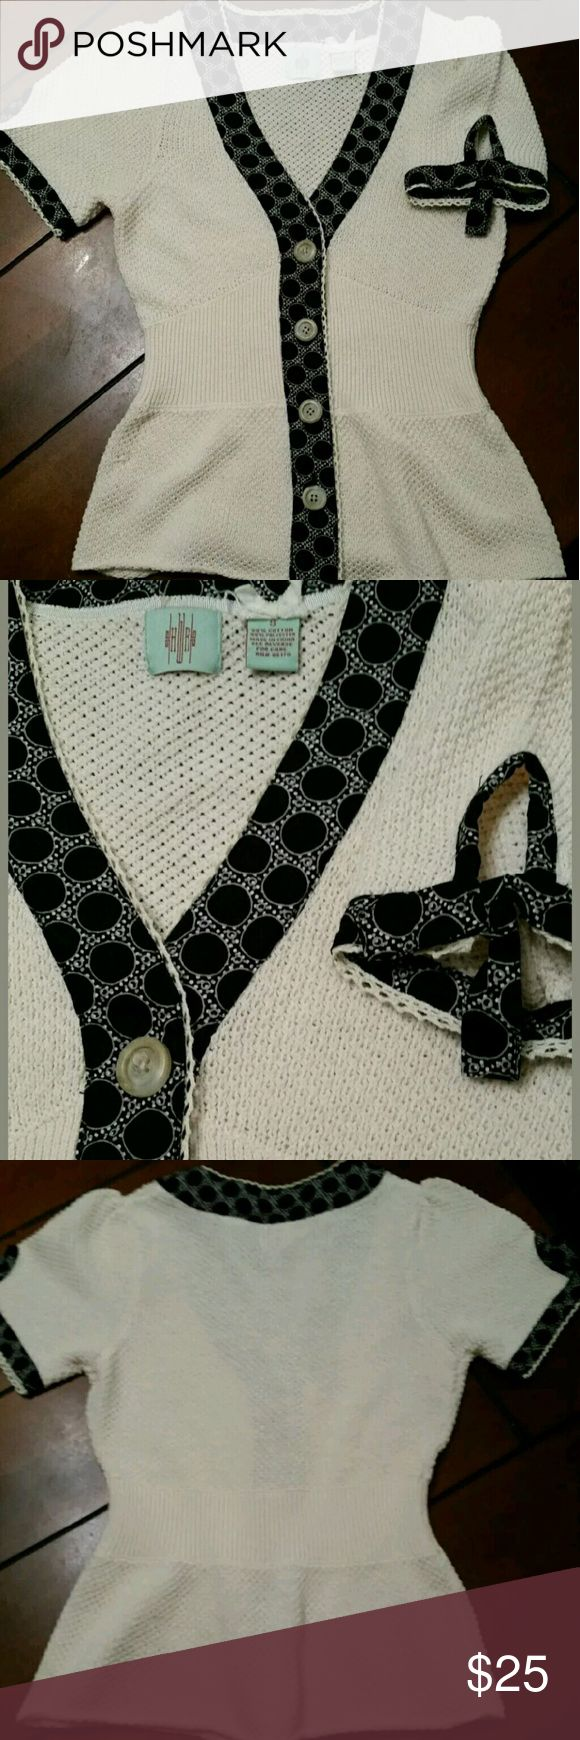 Anthropologie HWR cream short sleeve cardigan S Tie and peep holes on sleeves. Design on trim is black,white and grey.One small snag on bottom front. Buttons intact. Good preowned condition anthropologie  Tops Button Down Shirts